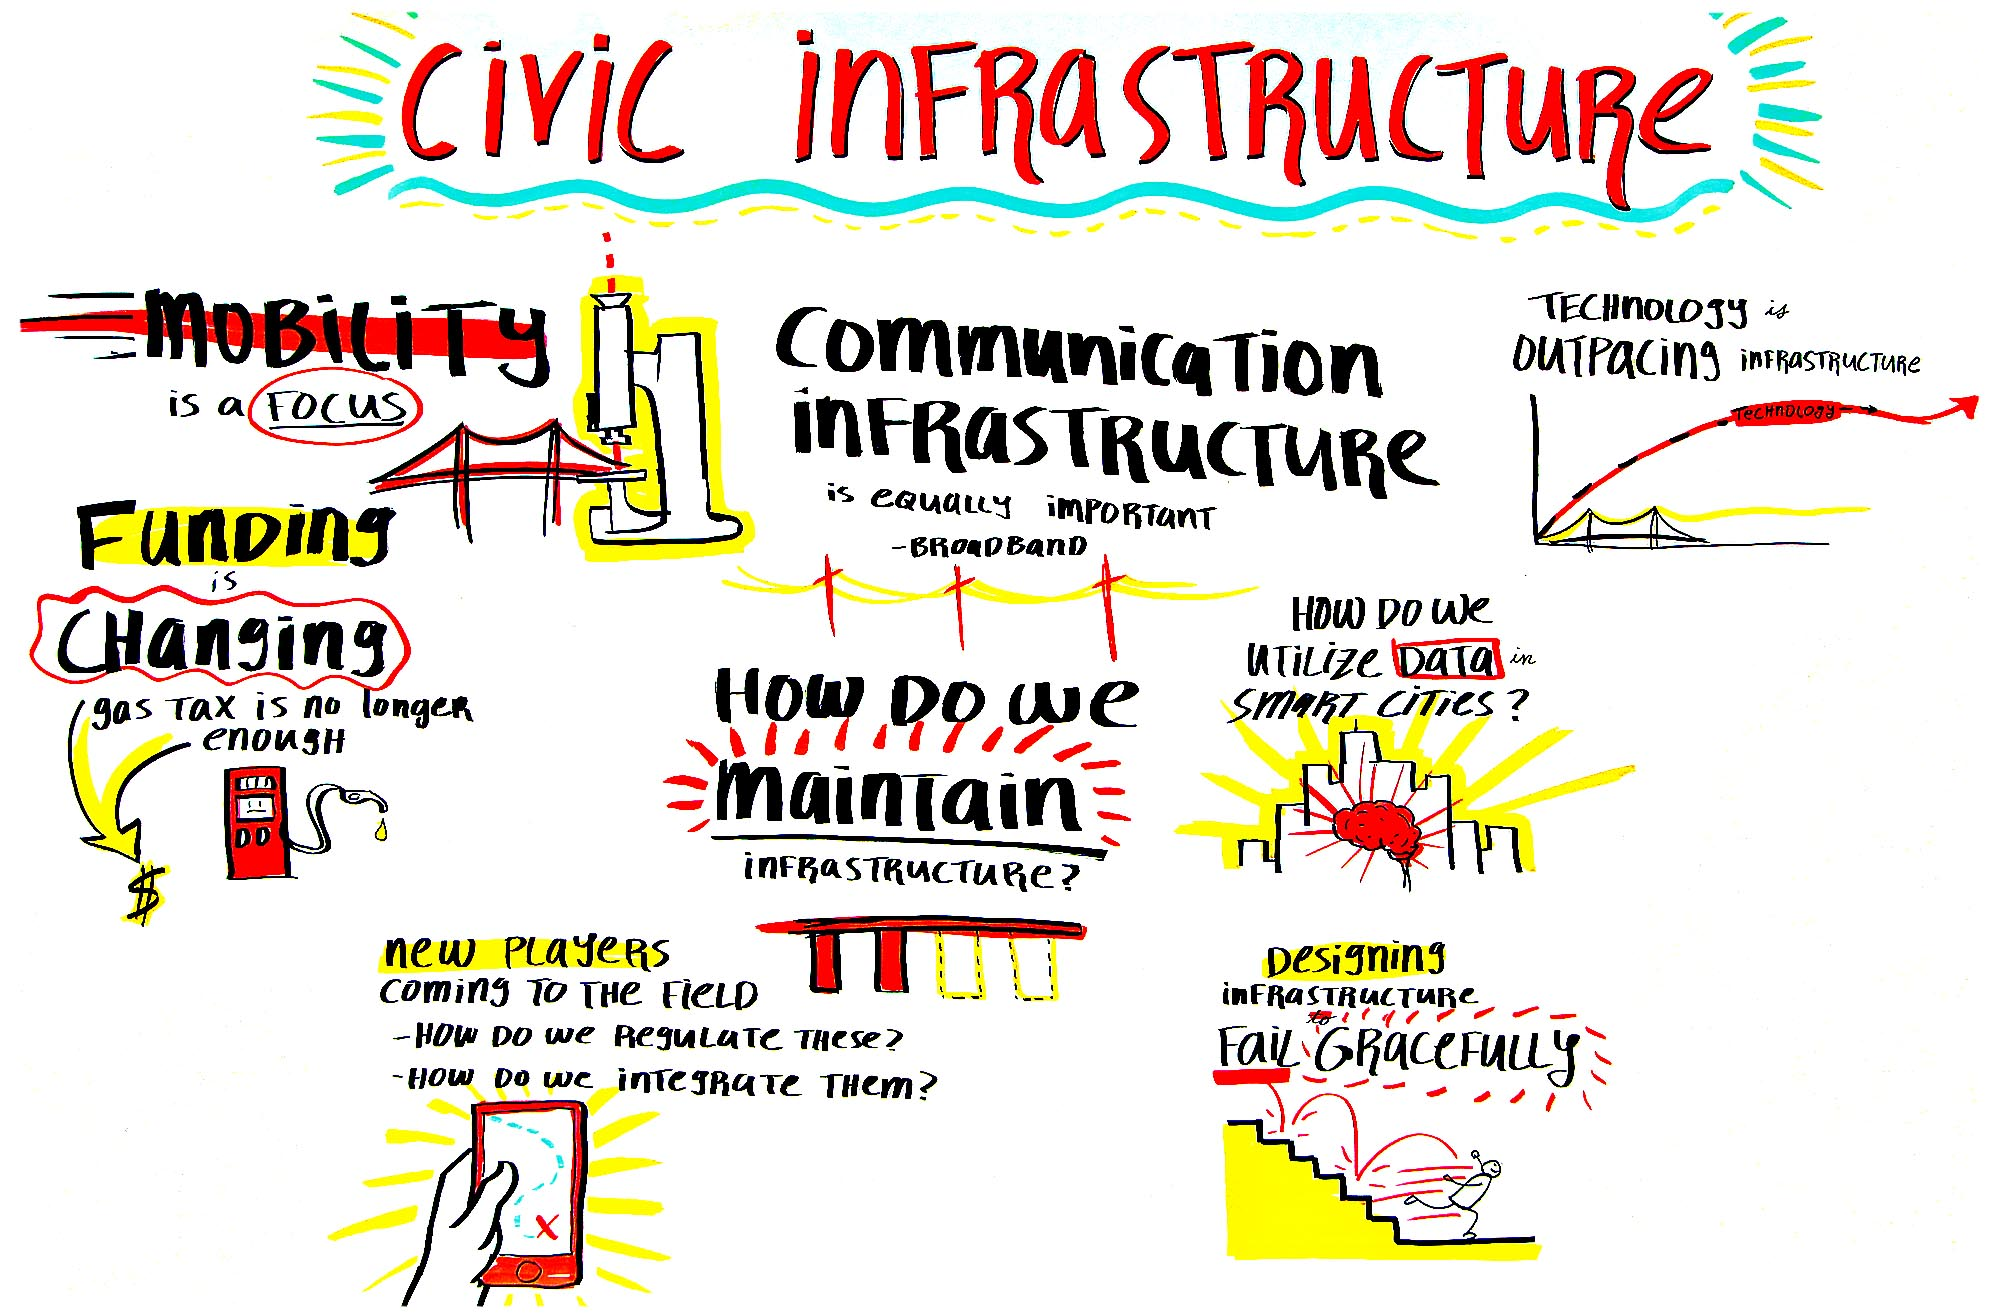 Civic Infrastructure - Scribing 1 | Mayors Conference 2017